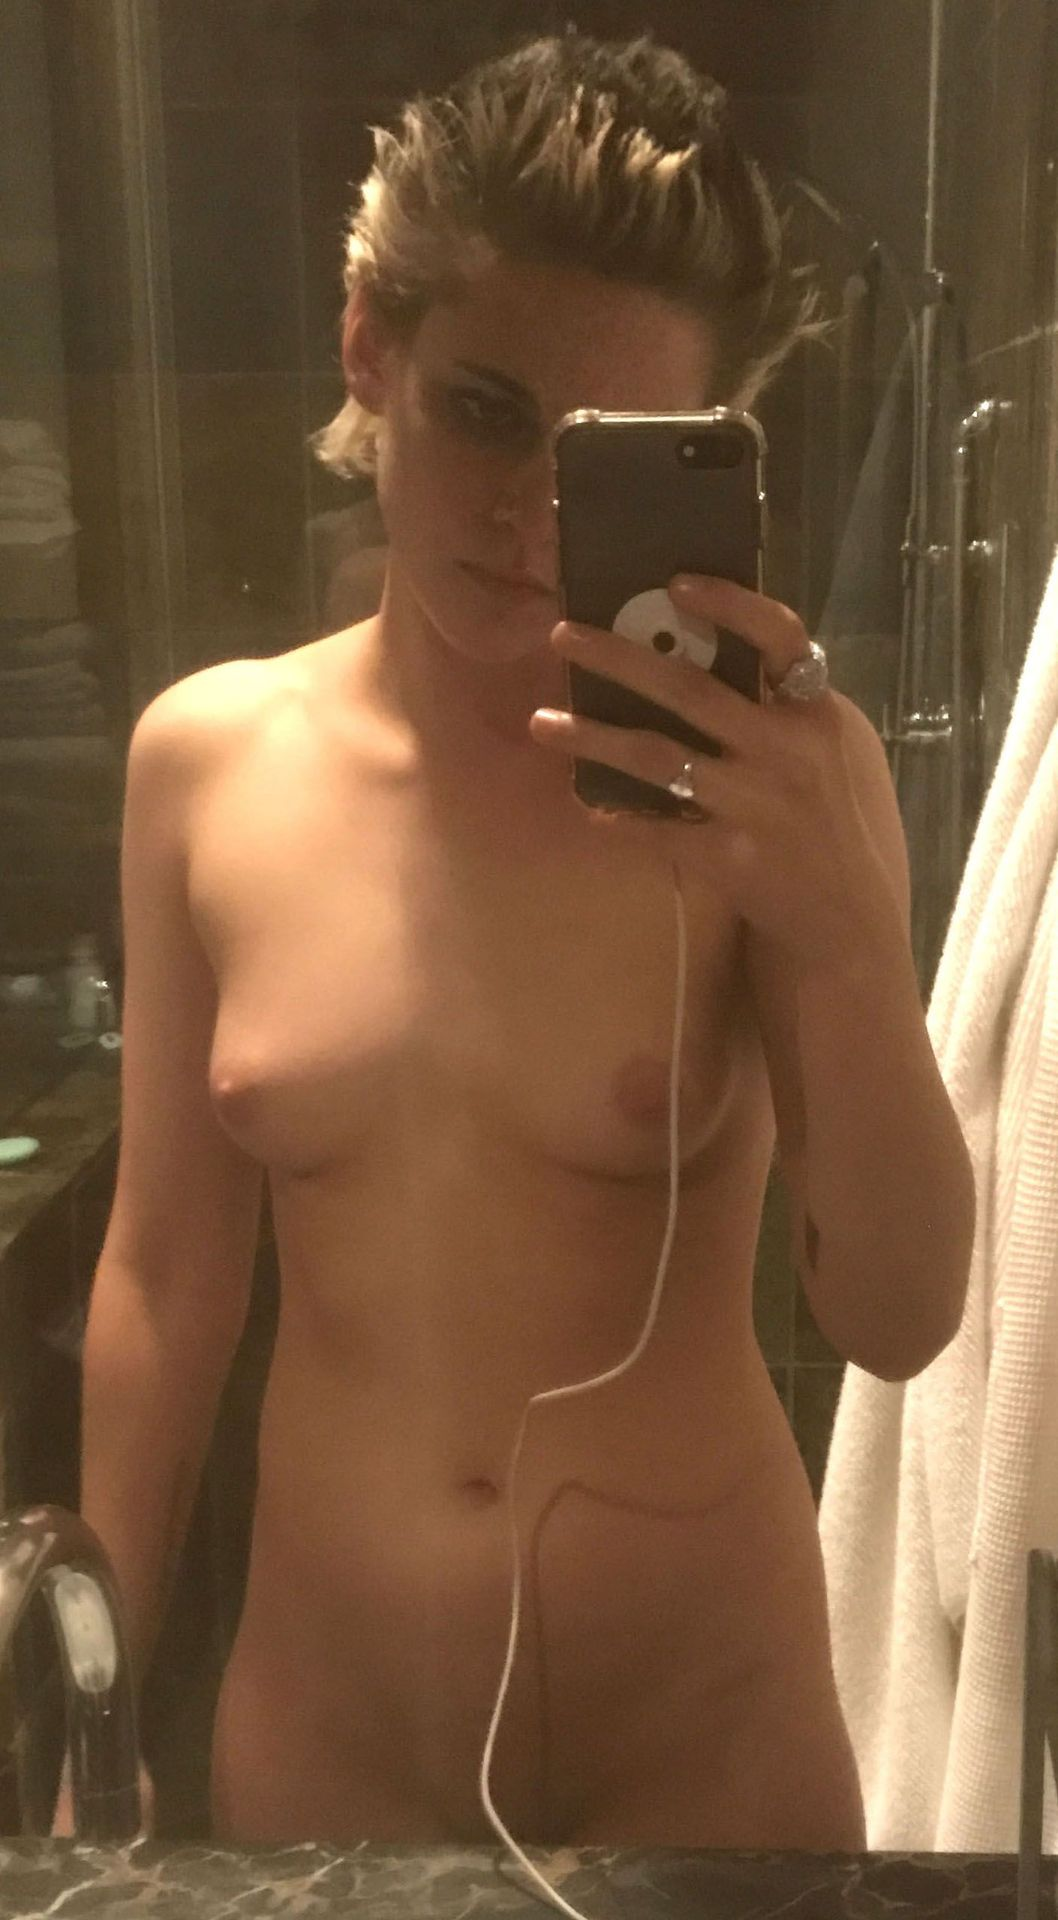 Kristen Stewart Nude Leaked The Fappening Complete Collection 0155